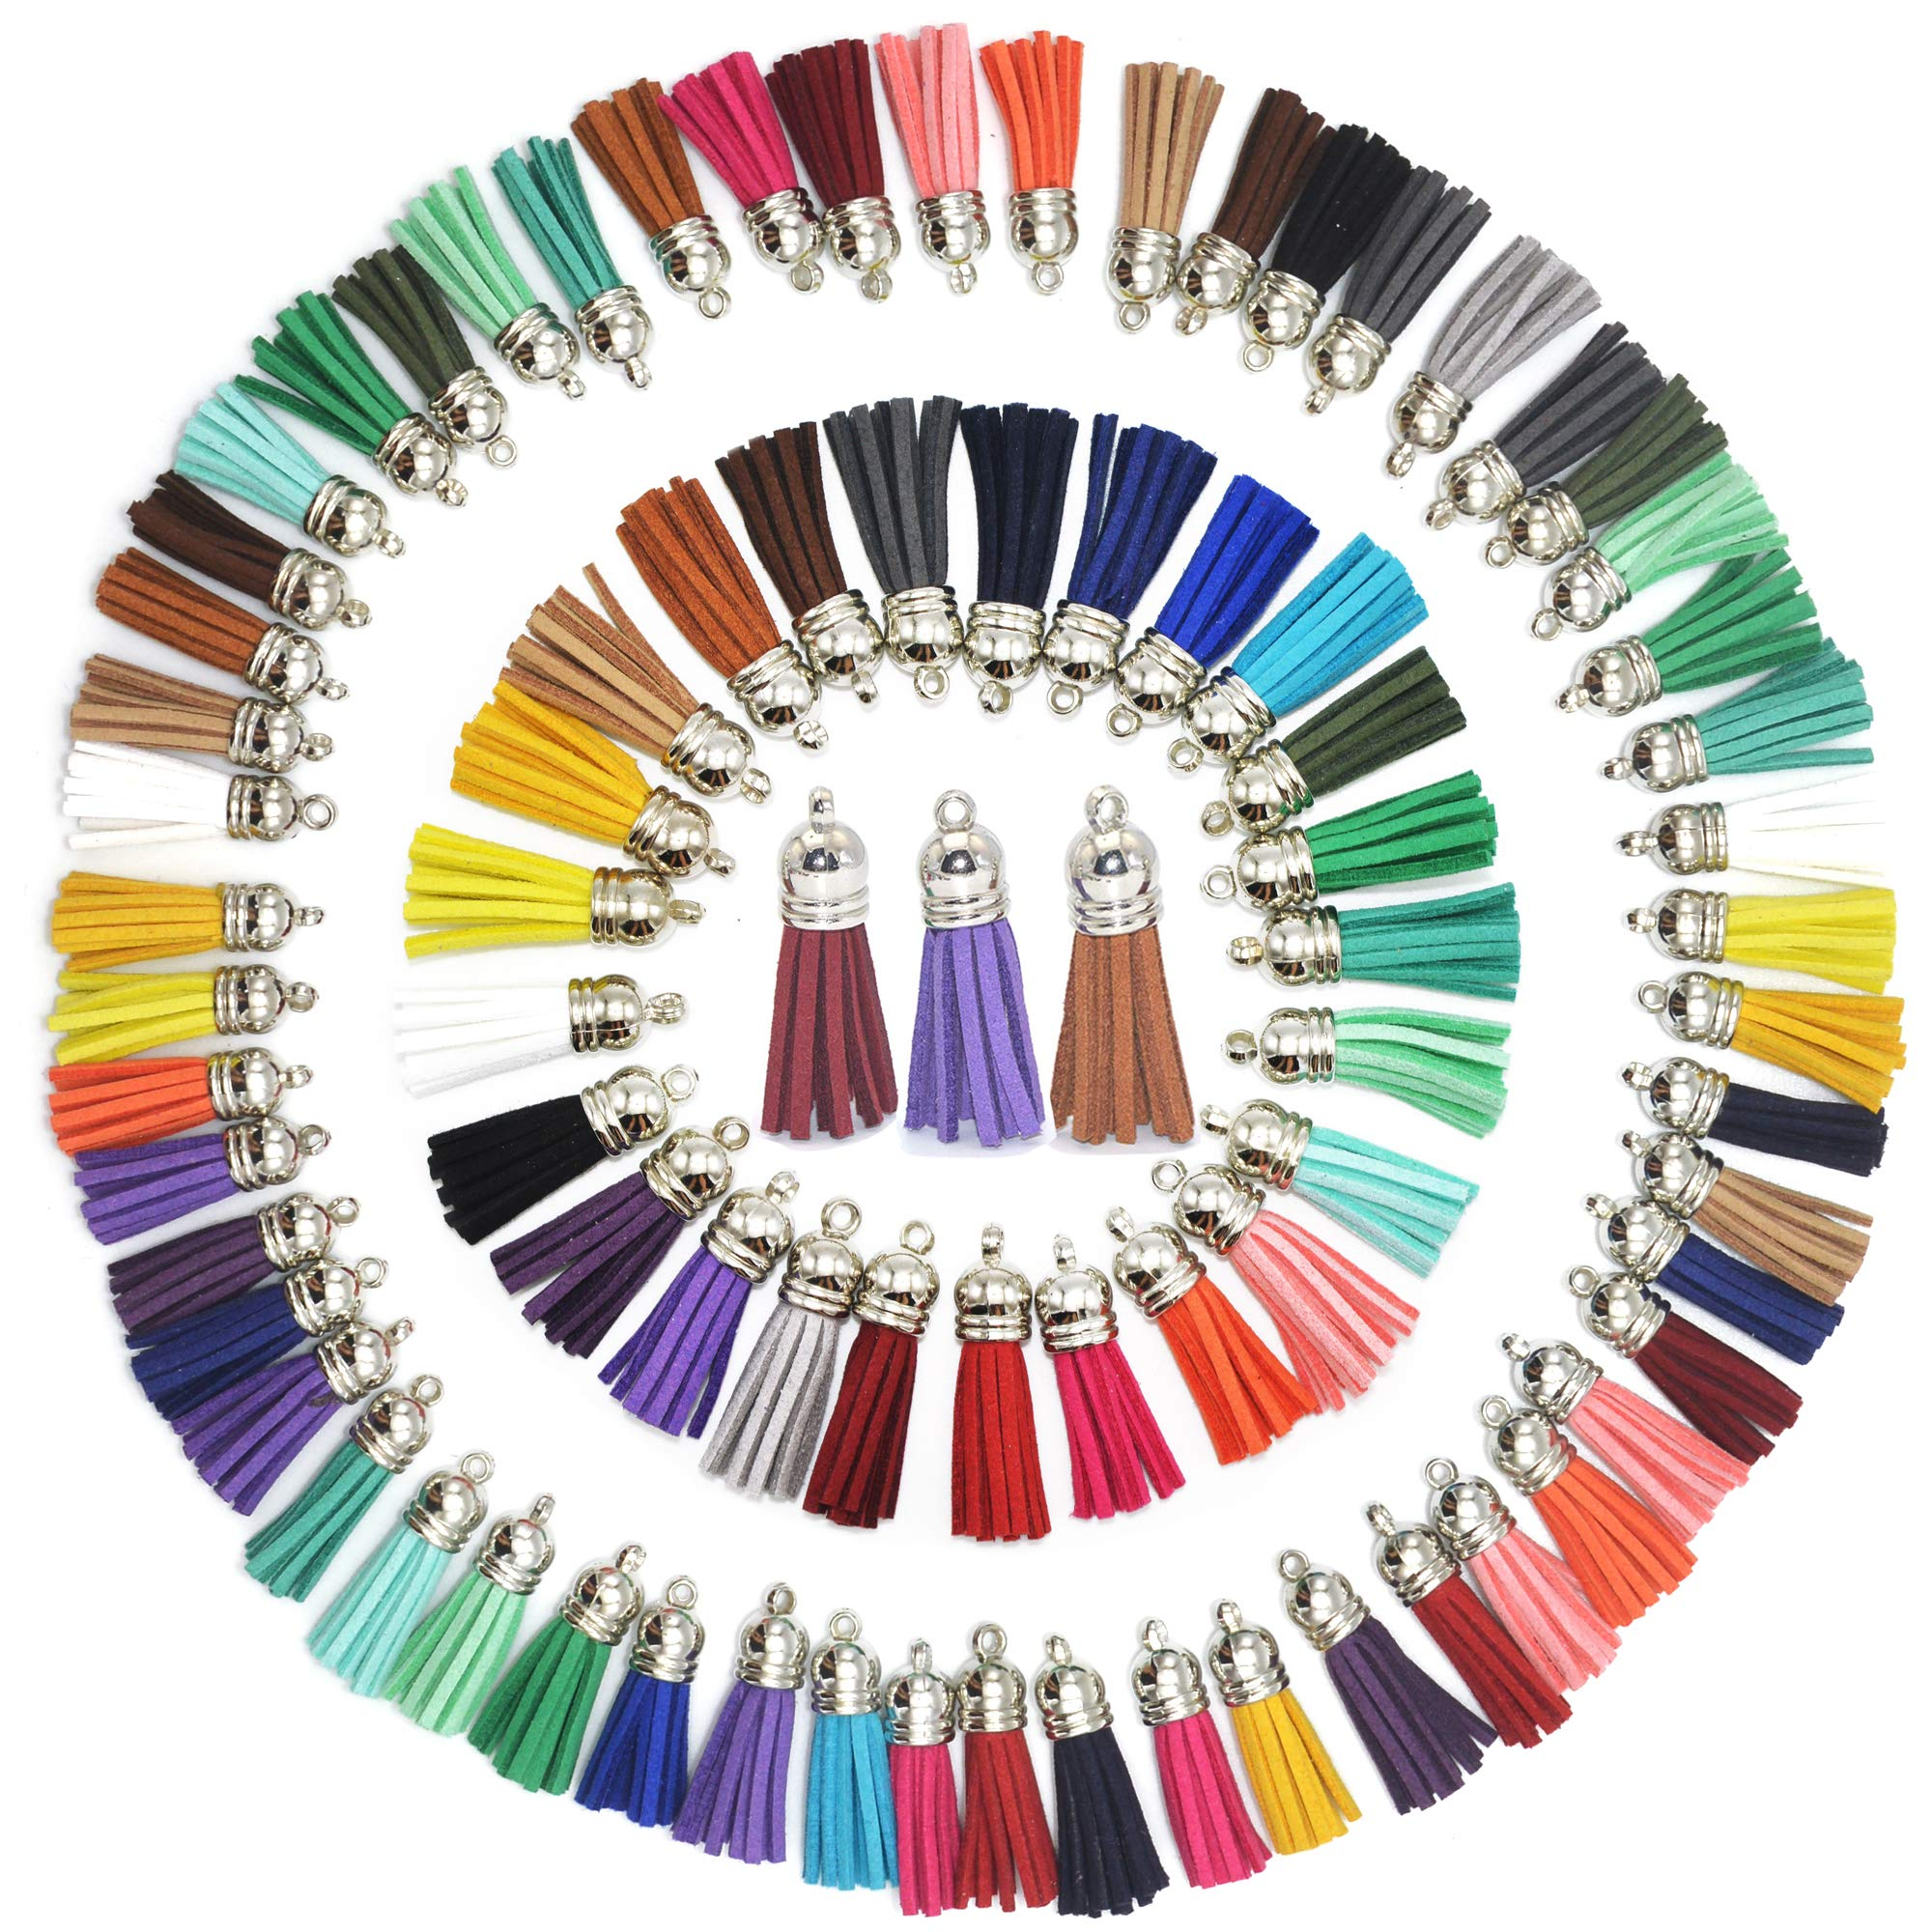 100pcs 40 mm Leather Tassel Pendants Faux Suede Tassel 25 Colors, Doubletwo Mixed Tassel Pendants with Caps for Key Chain Straps DIY Accessories by Doubletwo